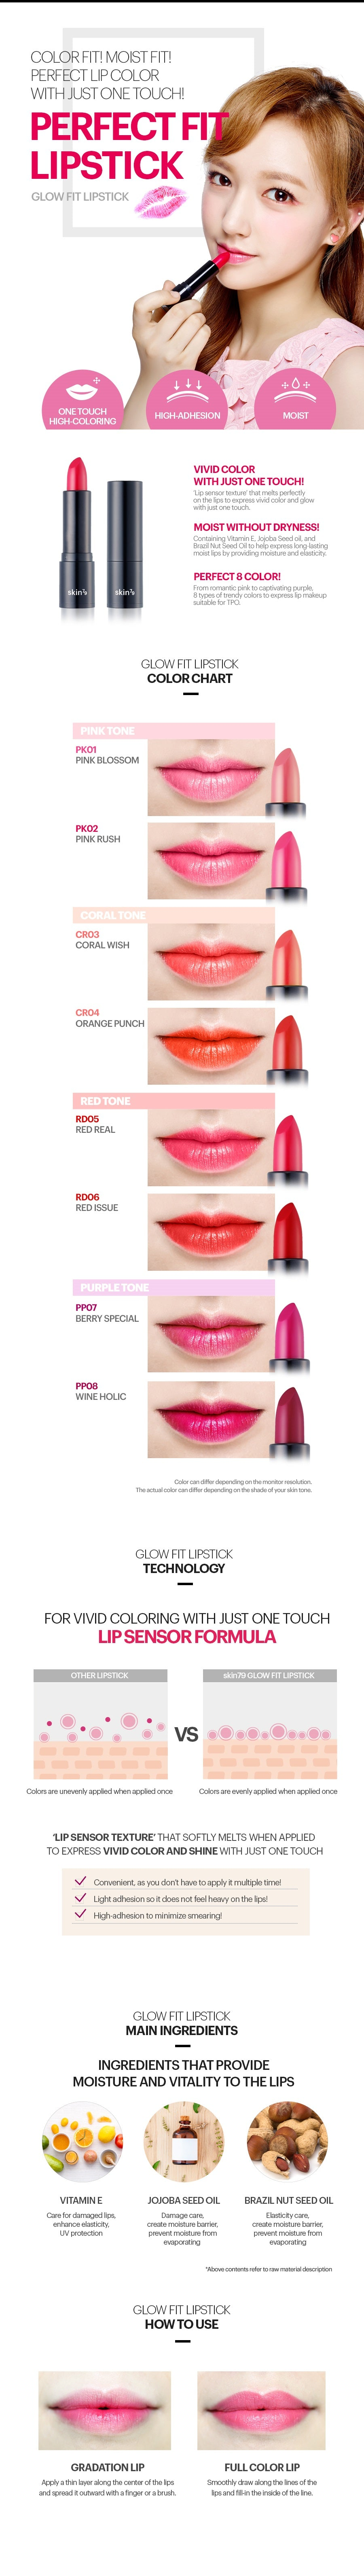 SKIN79 Glow Fit Lipstick RD05 Red Real